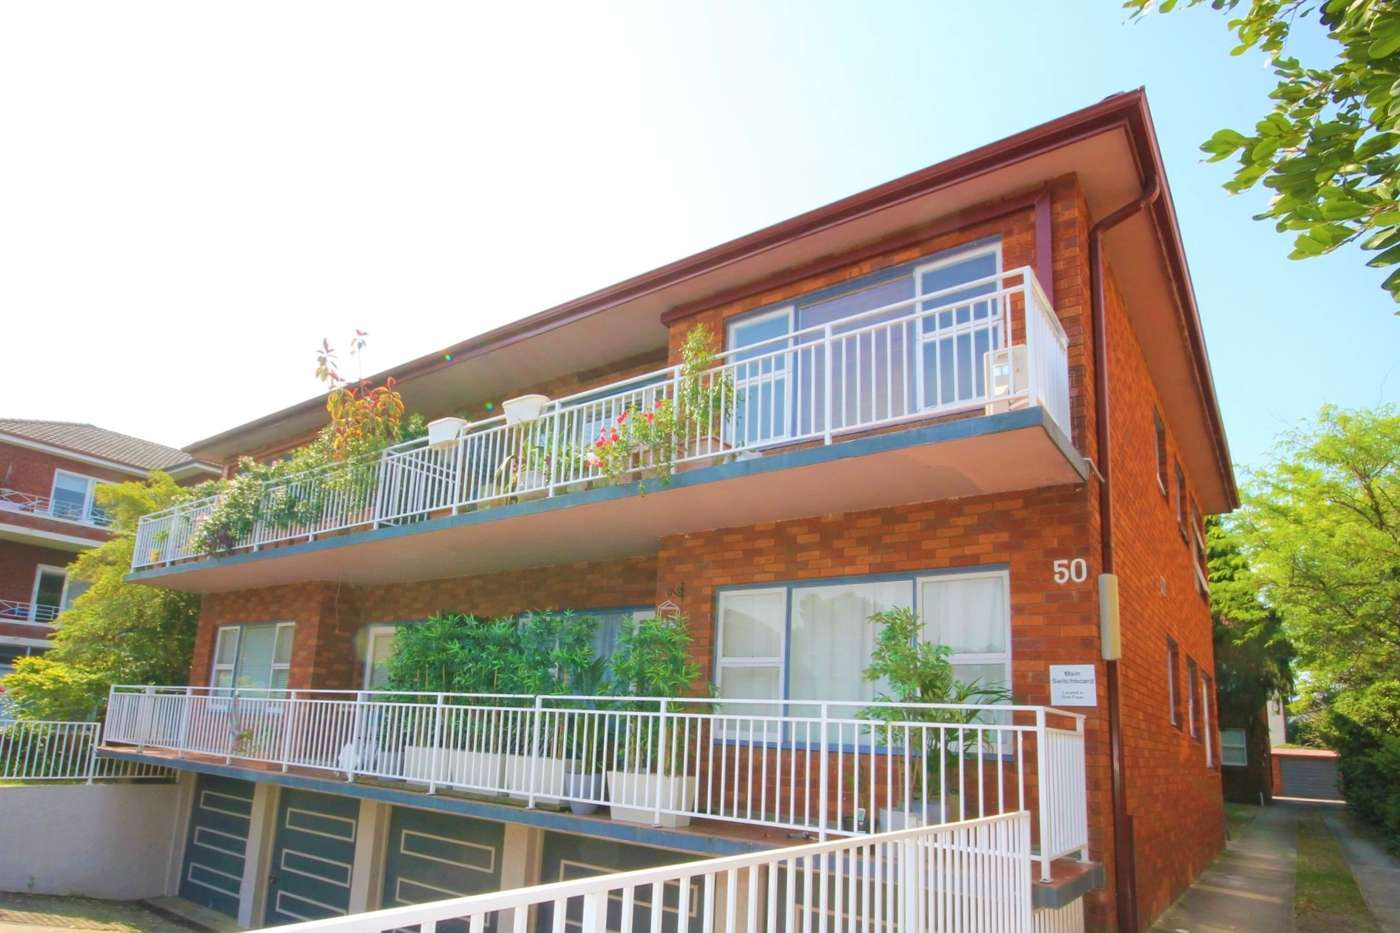 Main view of Homely apartment listing, 6/50 Banks Street, Monterey, NSW 2217